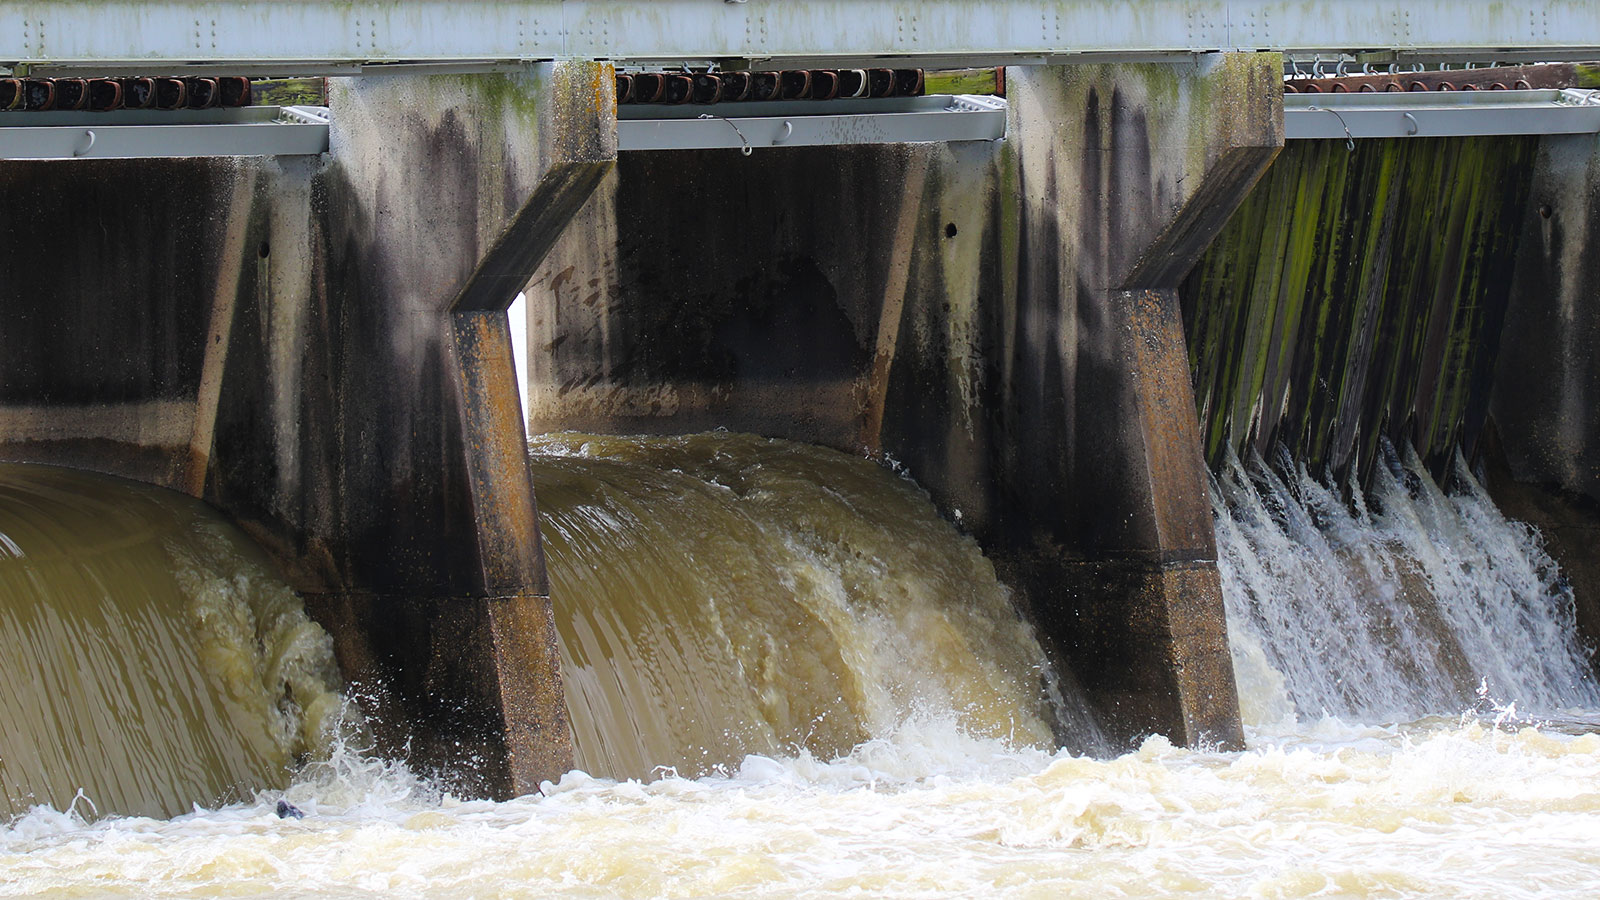 The Bonnet Carré Spillway flood structure in St. Charles Parish